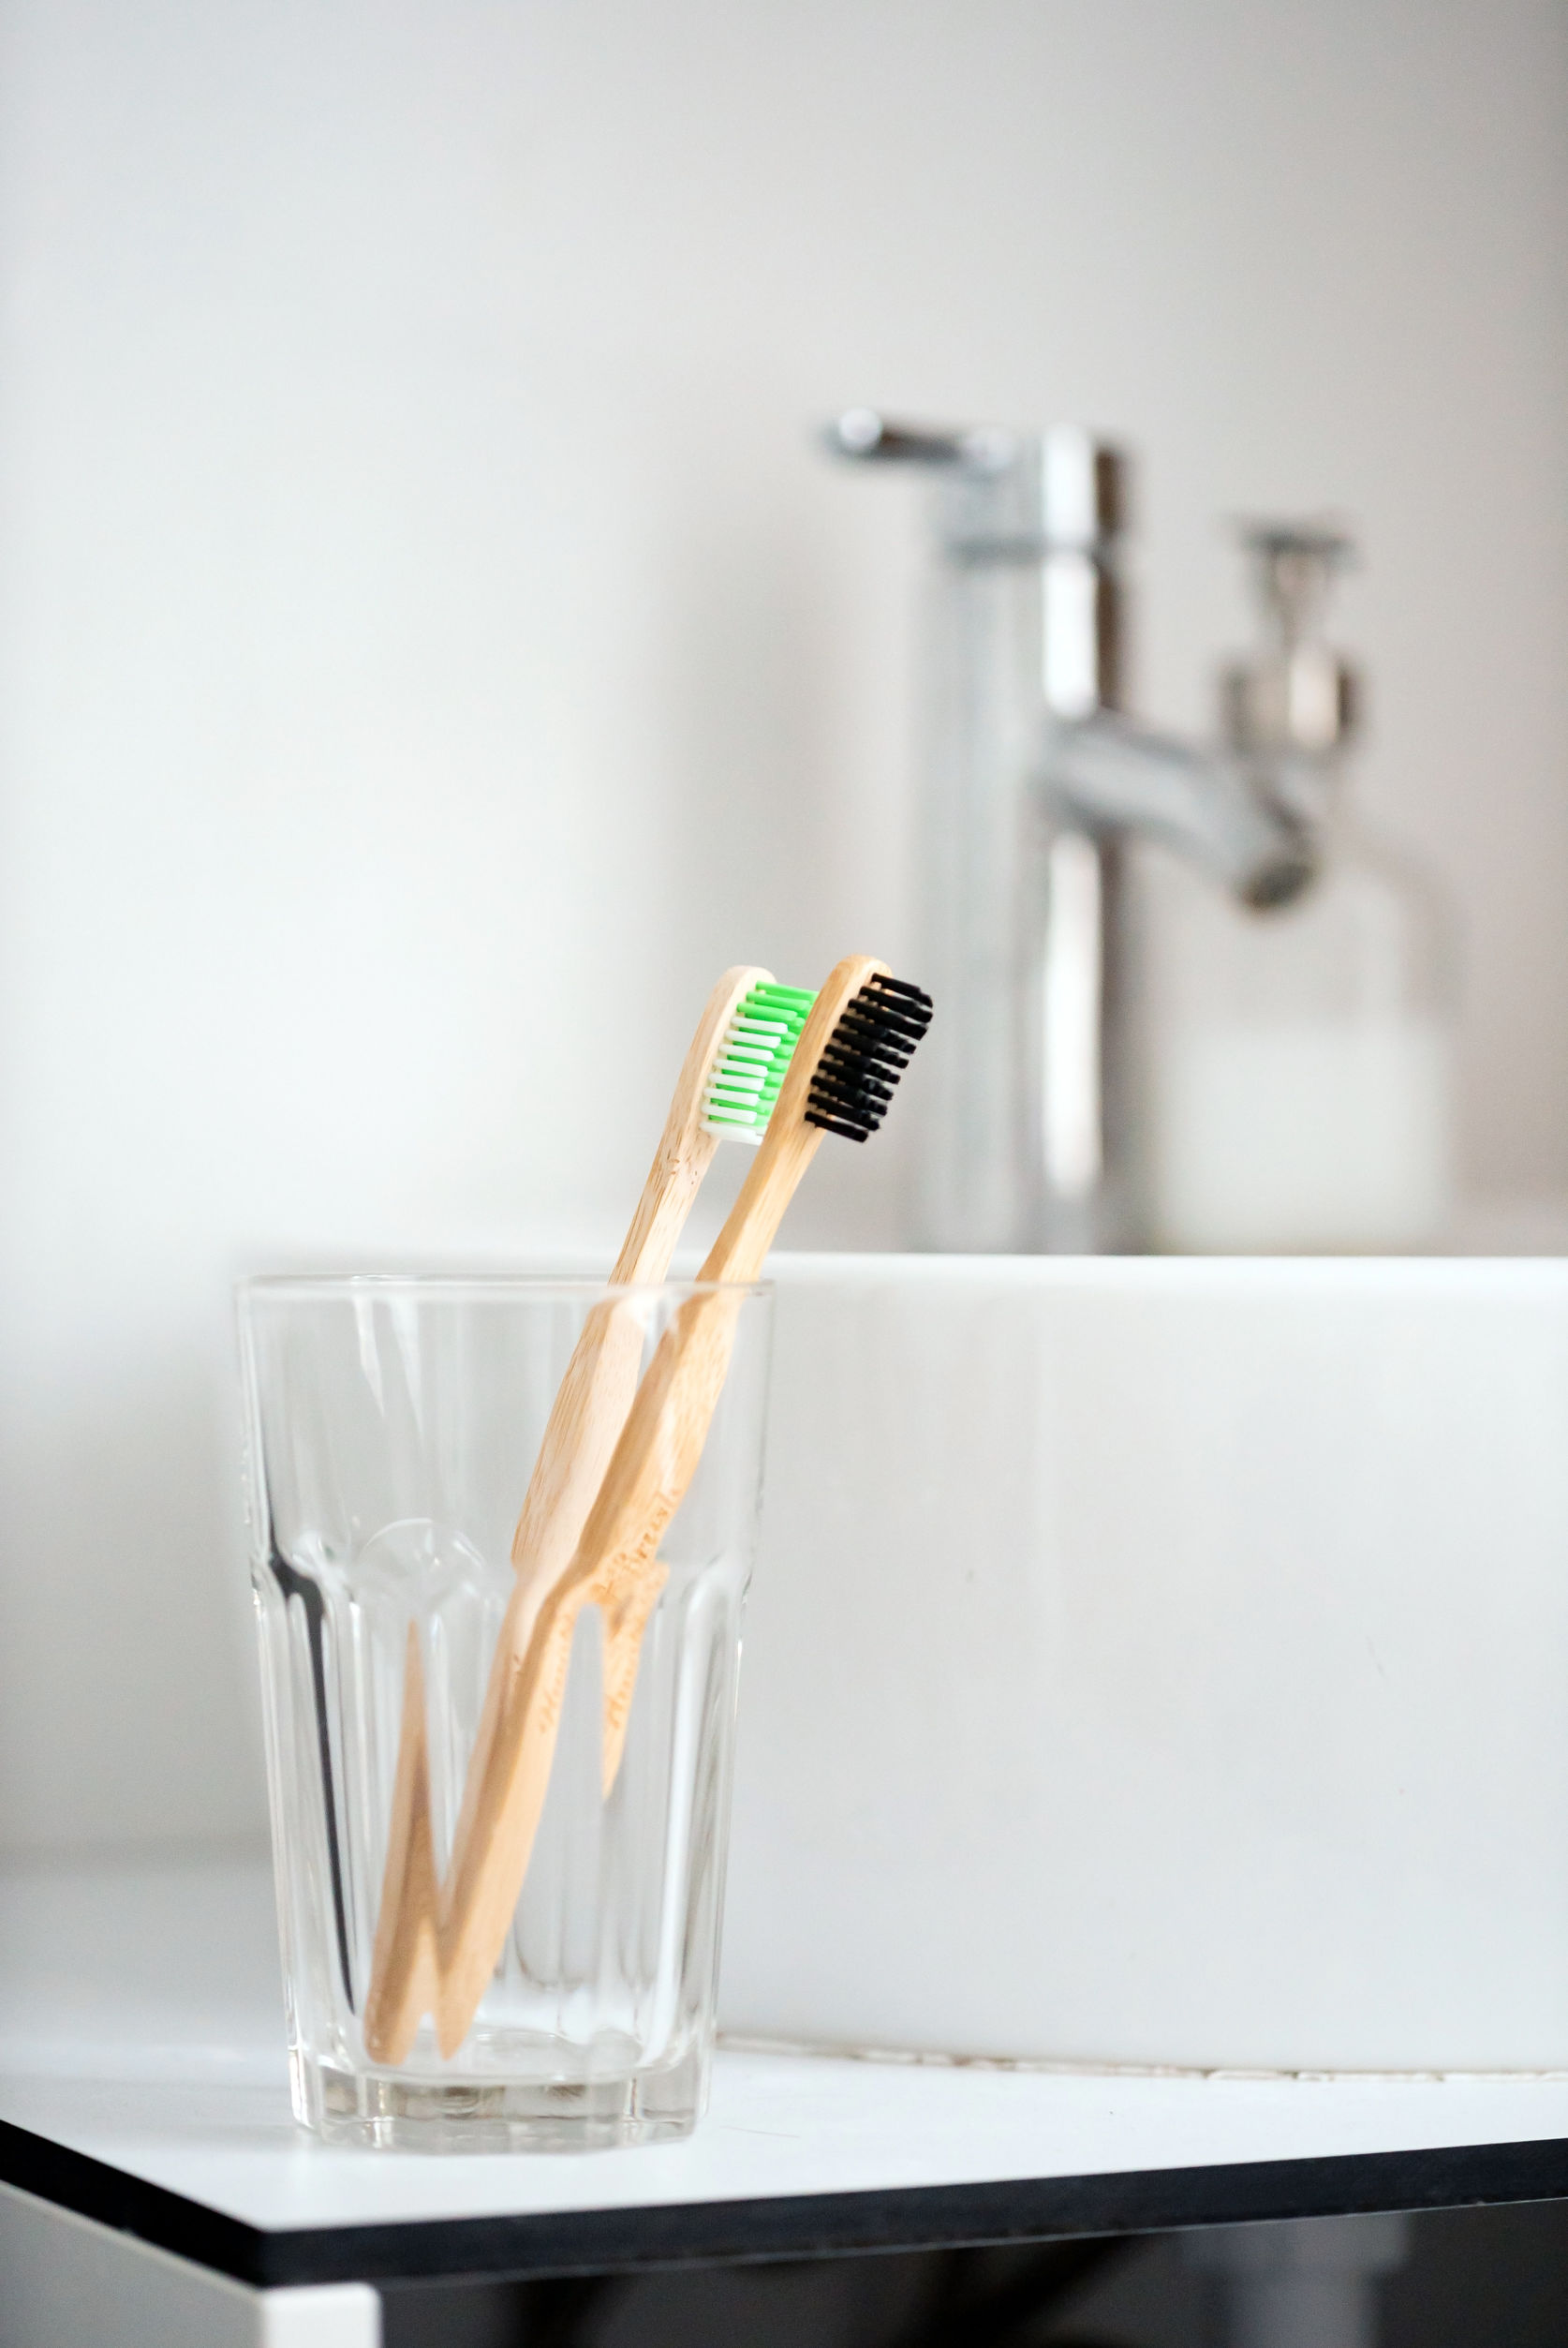 eco natural bamboo toothbrushes in glass. sustainable lifestyle concept. zero waste home. bathroom essentials, plastic free items